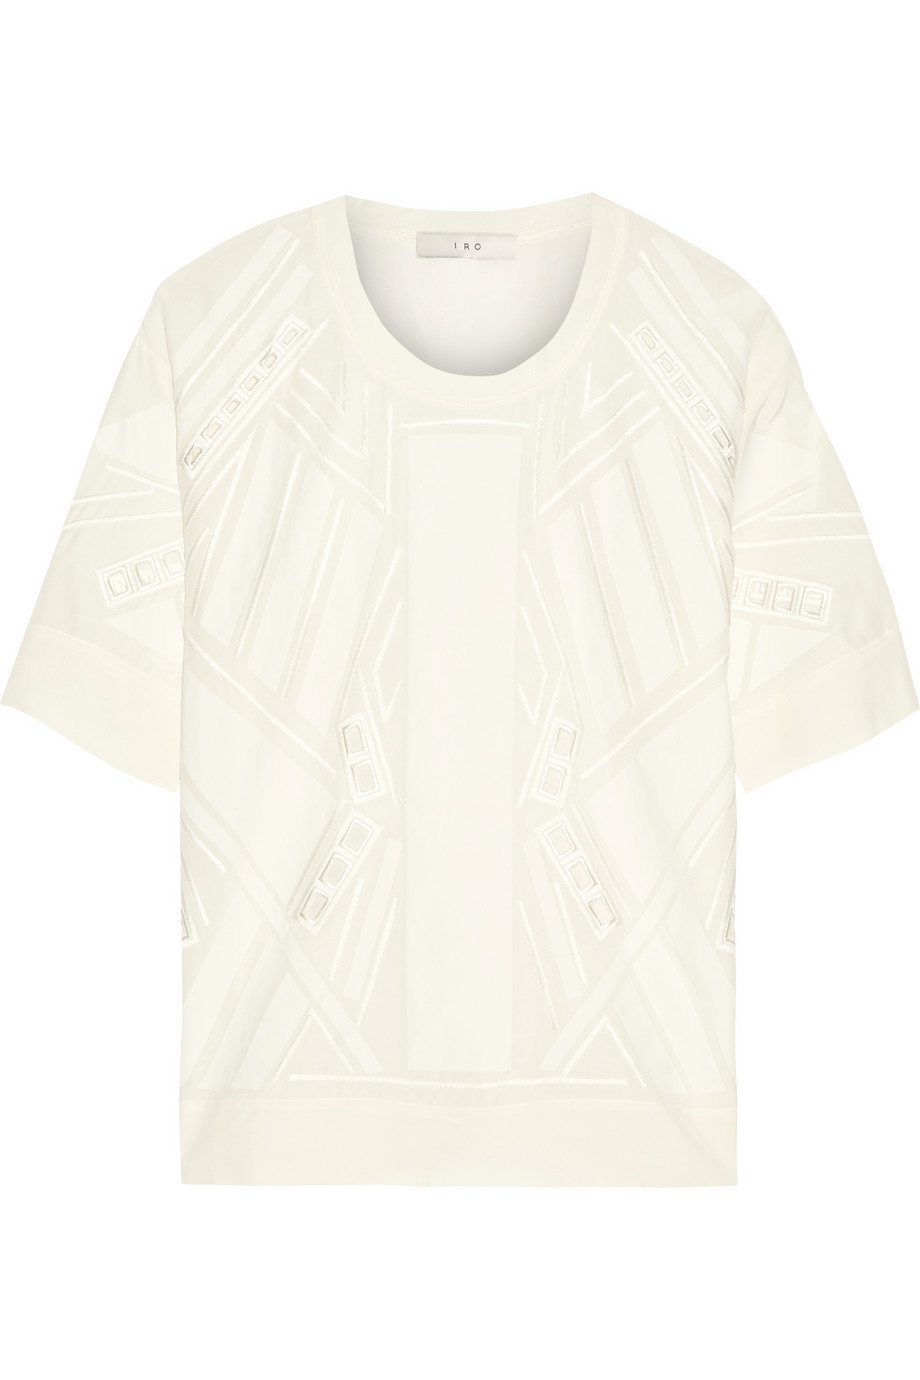 Embroidered Silk Top Ivory - neckline: round neck; pattern: plain; predominant colour: ivory/cream; occasions: casual, creative work; length: standard; style: top; fibres: silk - 100%; fit: straight cut; sleeve length: short sleeve; sleeve style: standard; texture group: silky - light; pattern type: fabric; embellishment: embroidered; season: a/w 2015; wardrobe: highlight